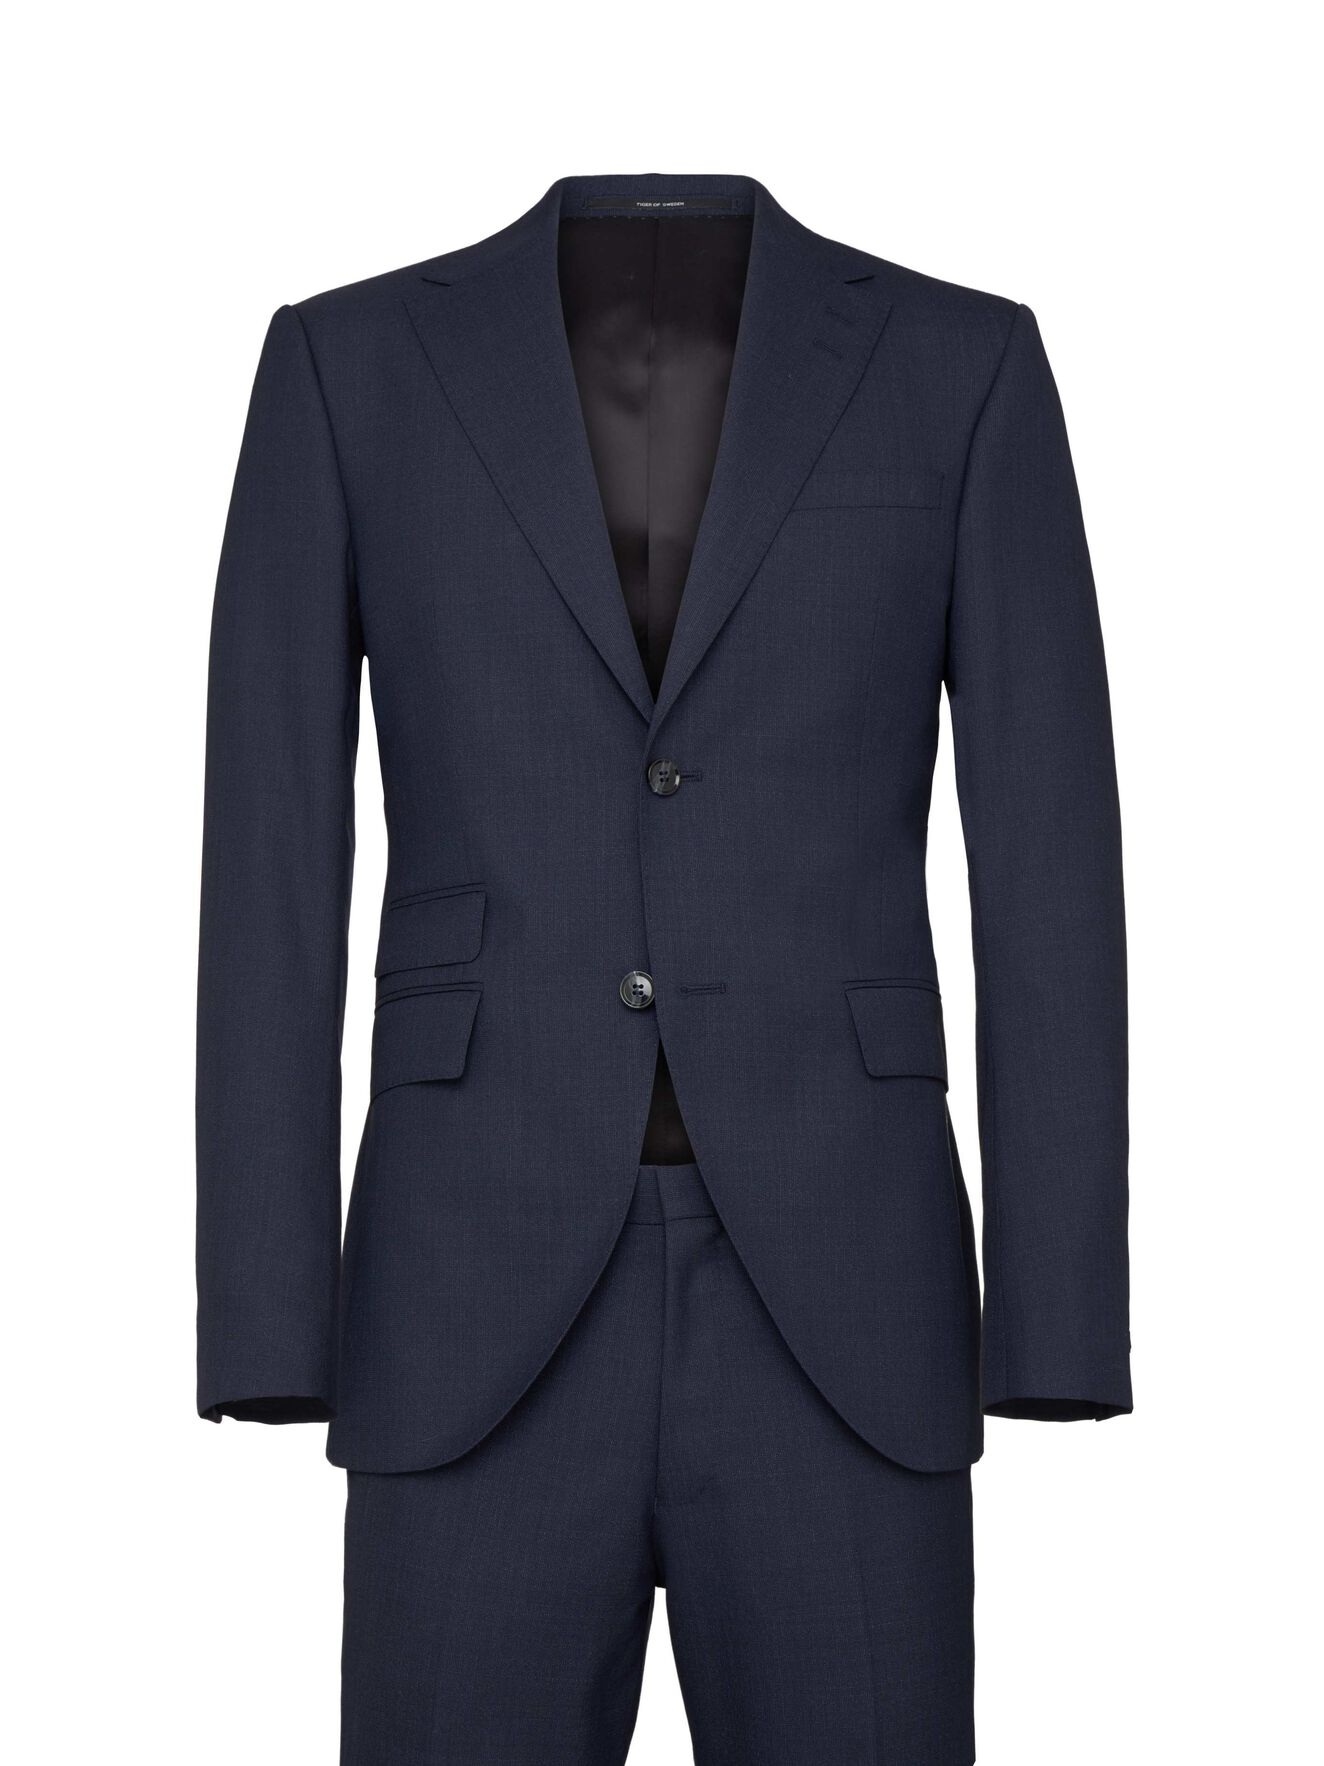 Barro Suit in Outer Blue from Tiger of Sweden